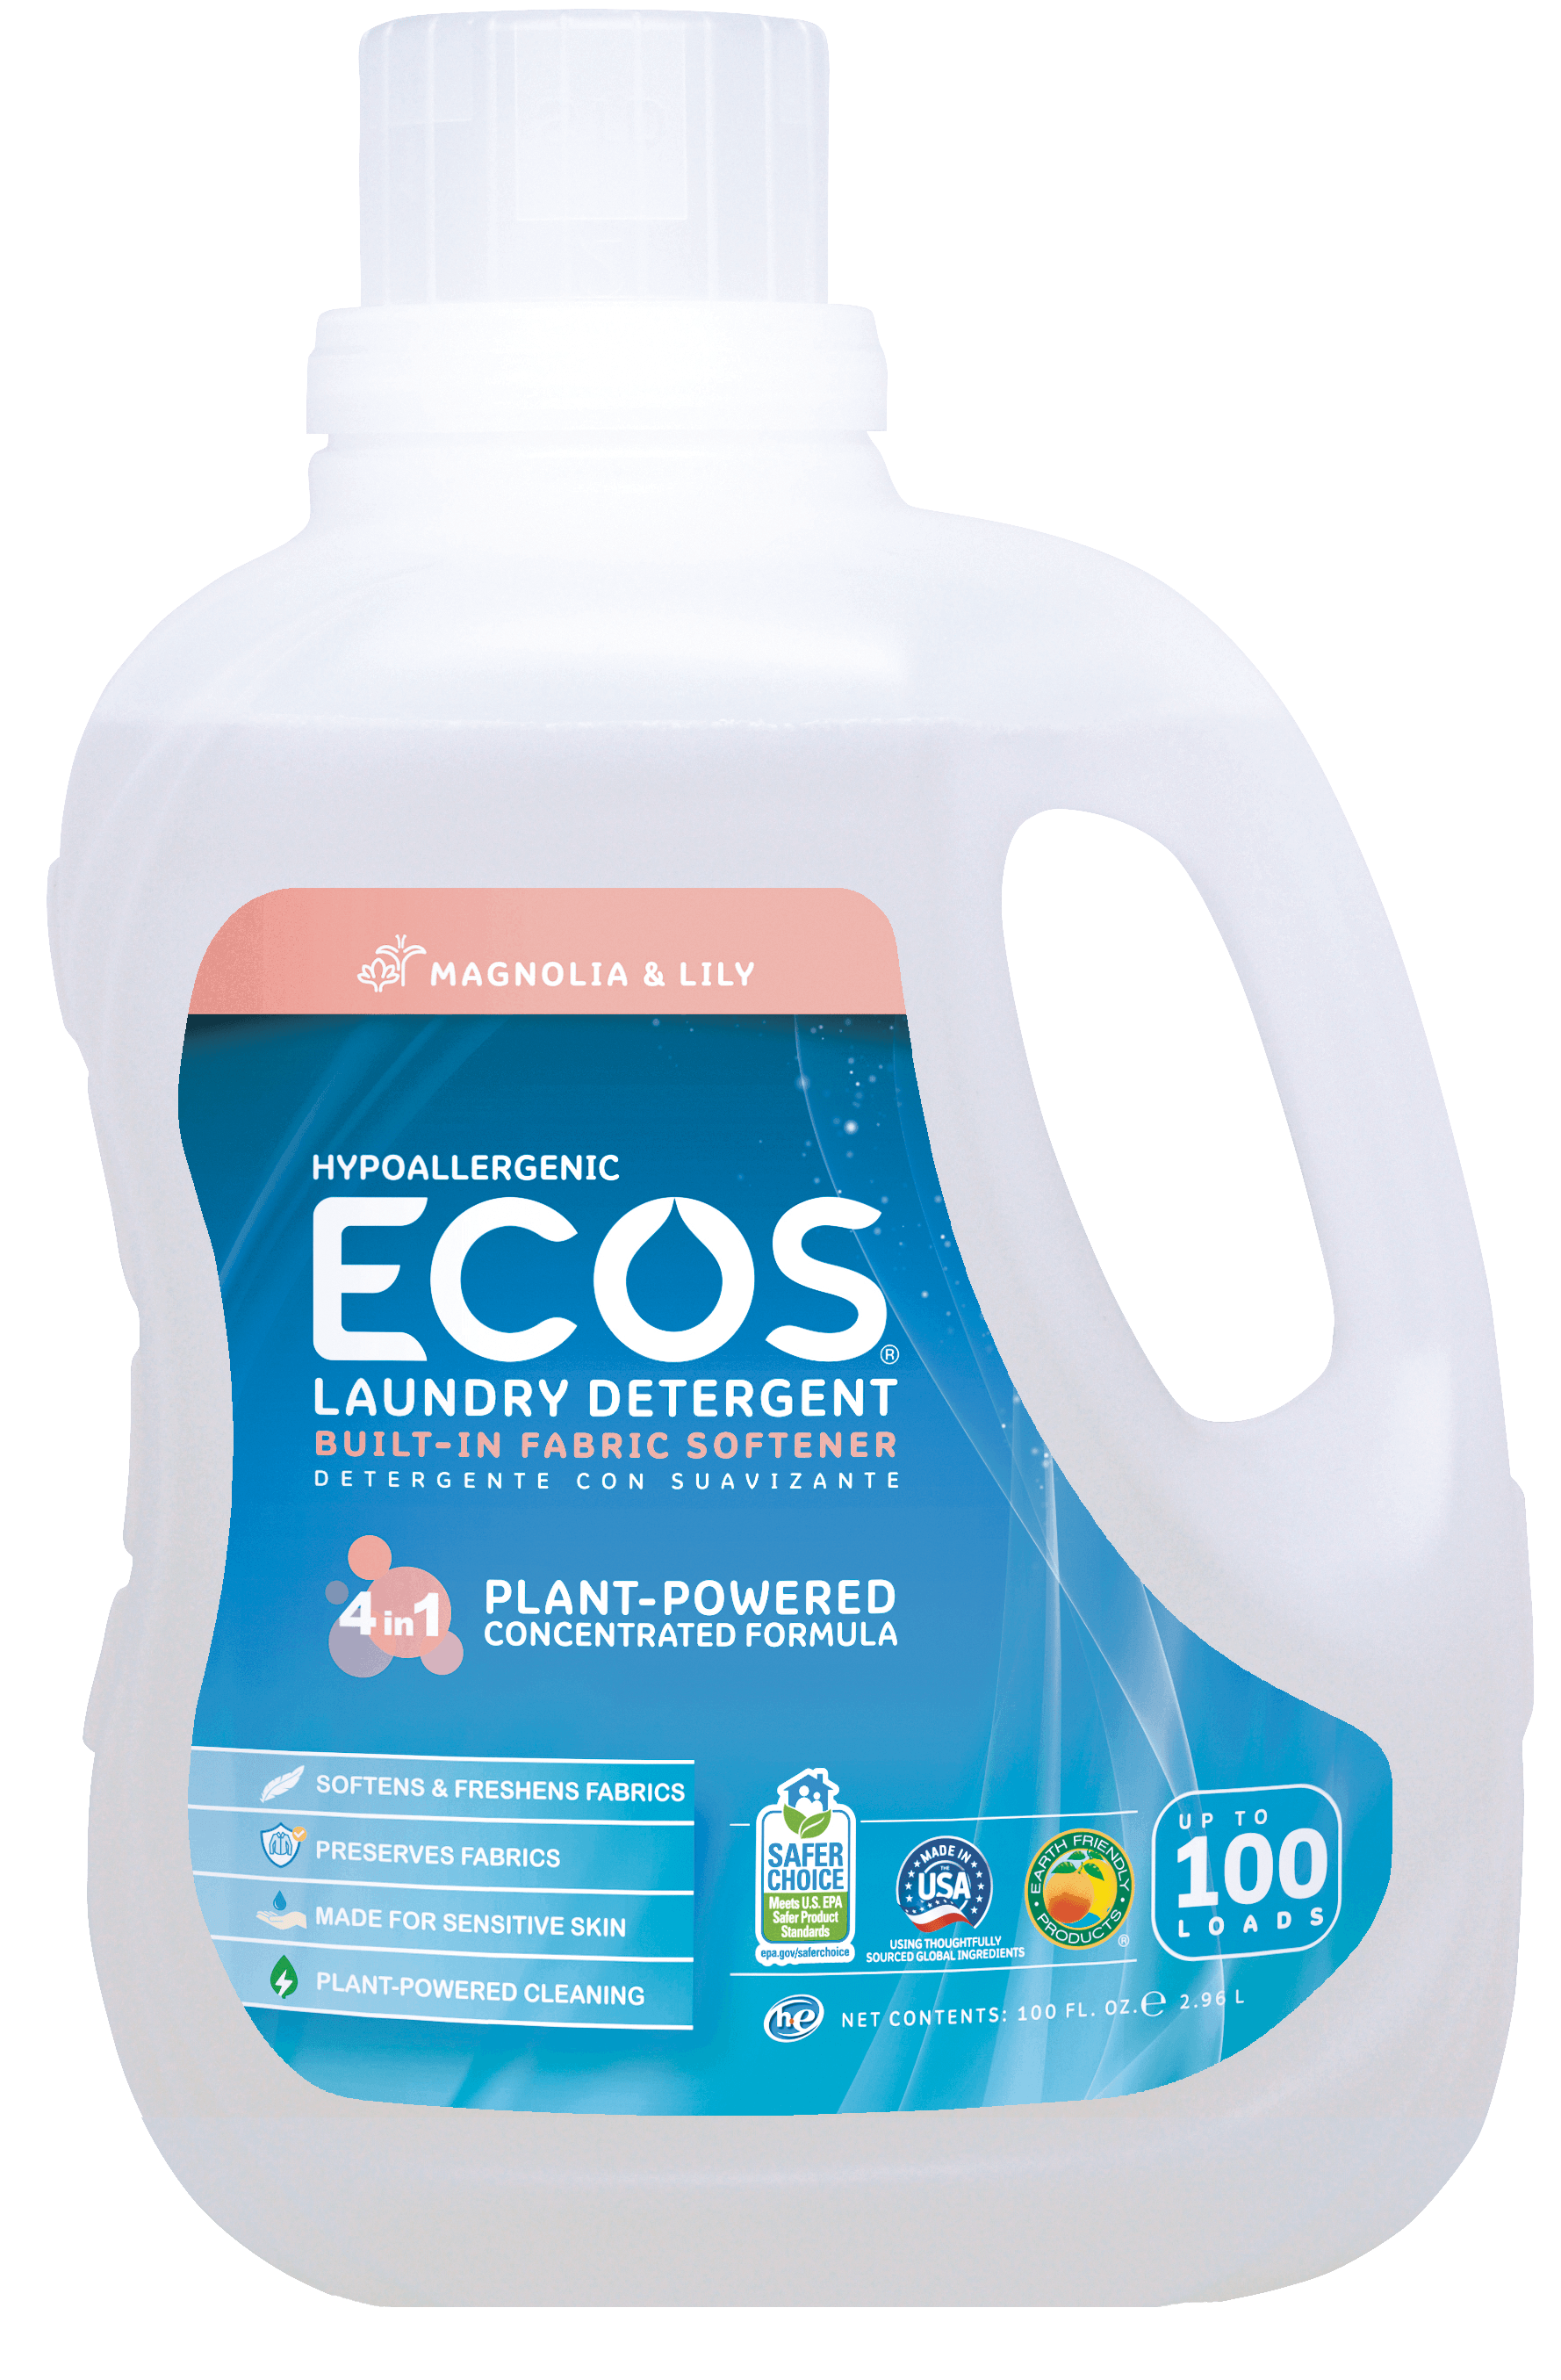 All Natural Detergent Hypoallergenic Magnolia Lily Ecos